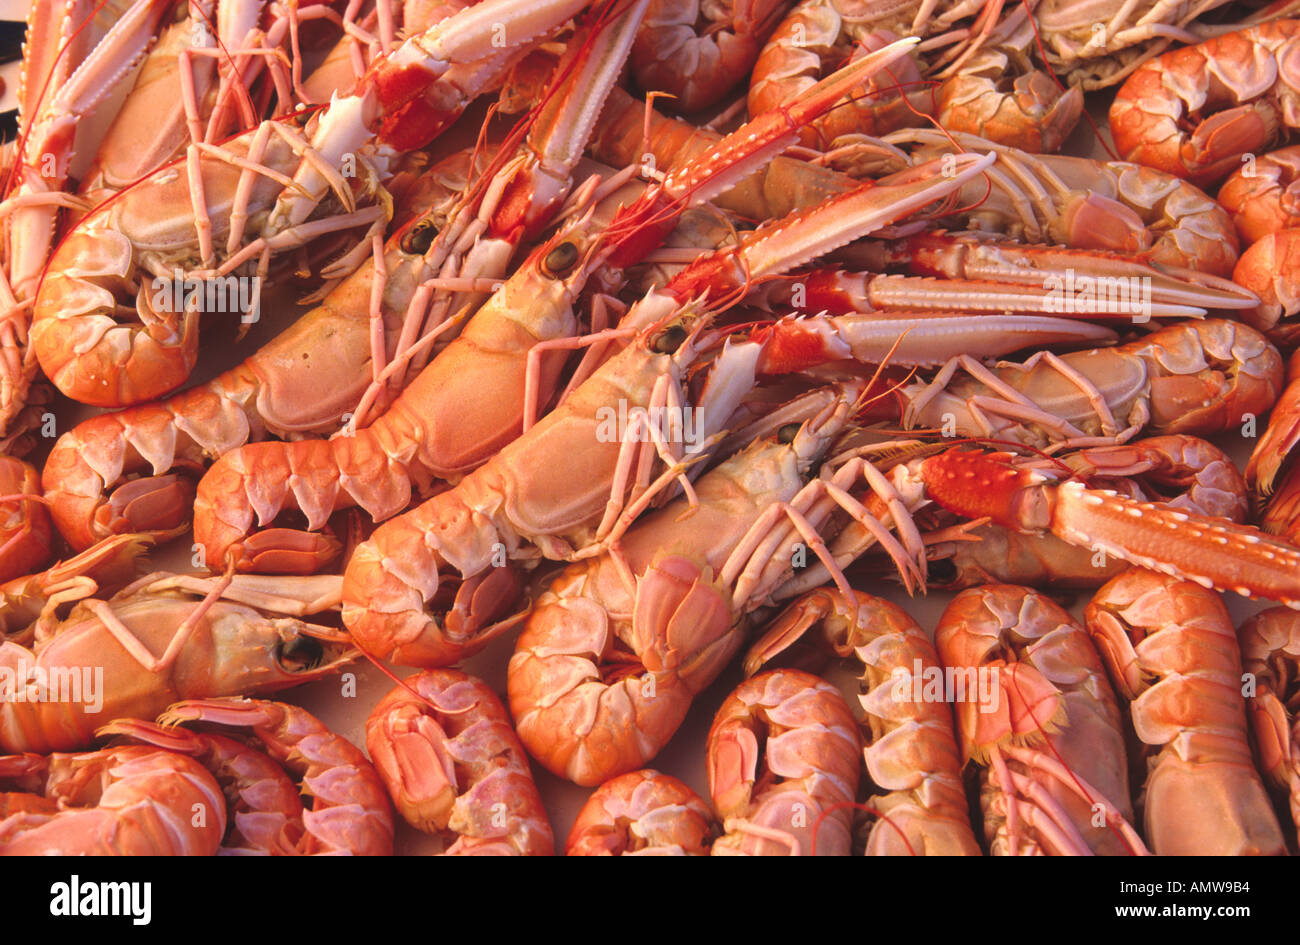 Langostines giant prawns caught sustainably in a MSC certified Stock